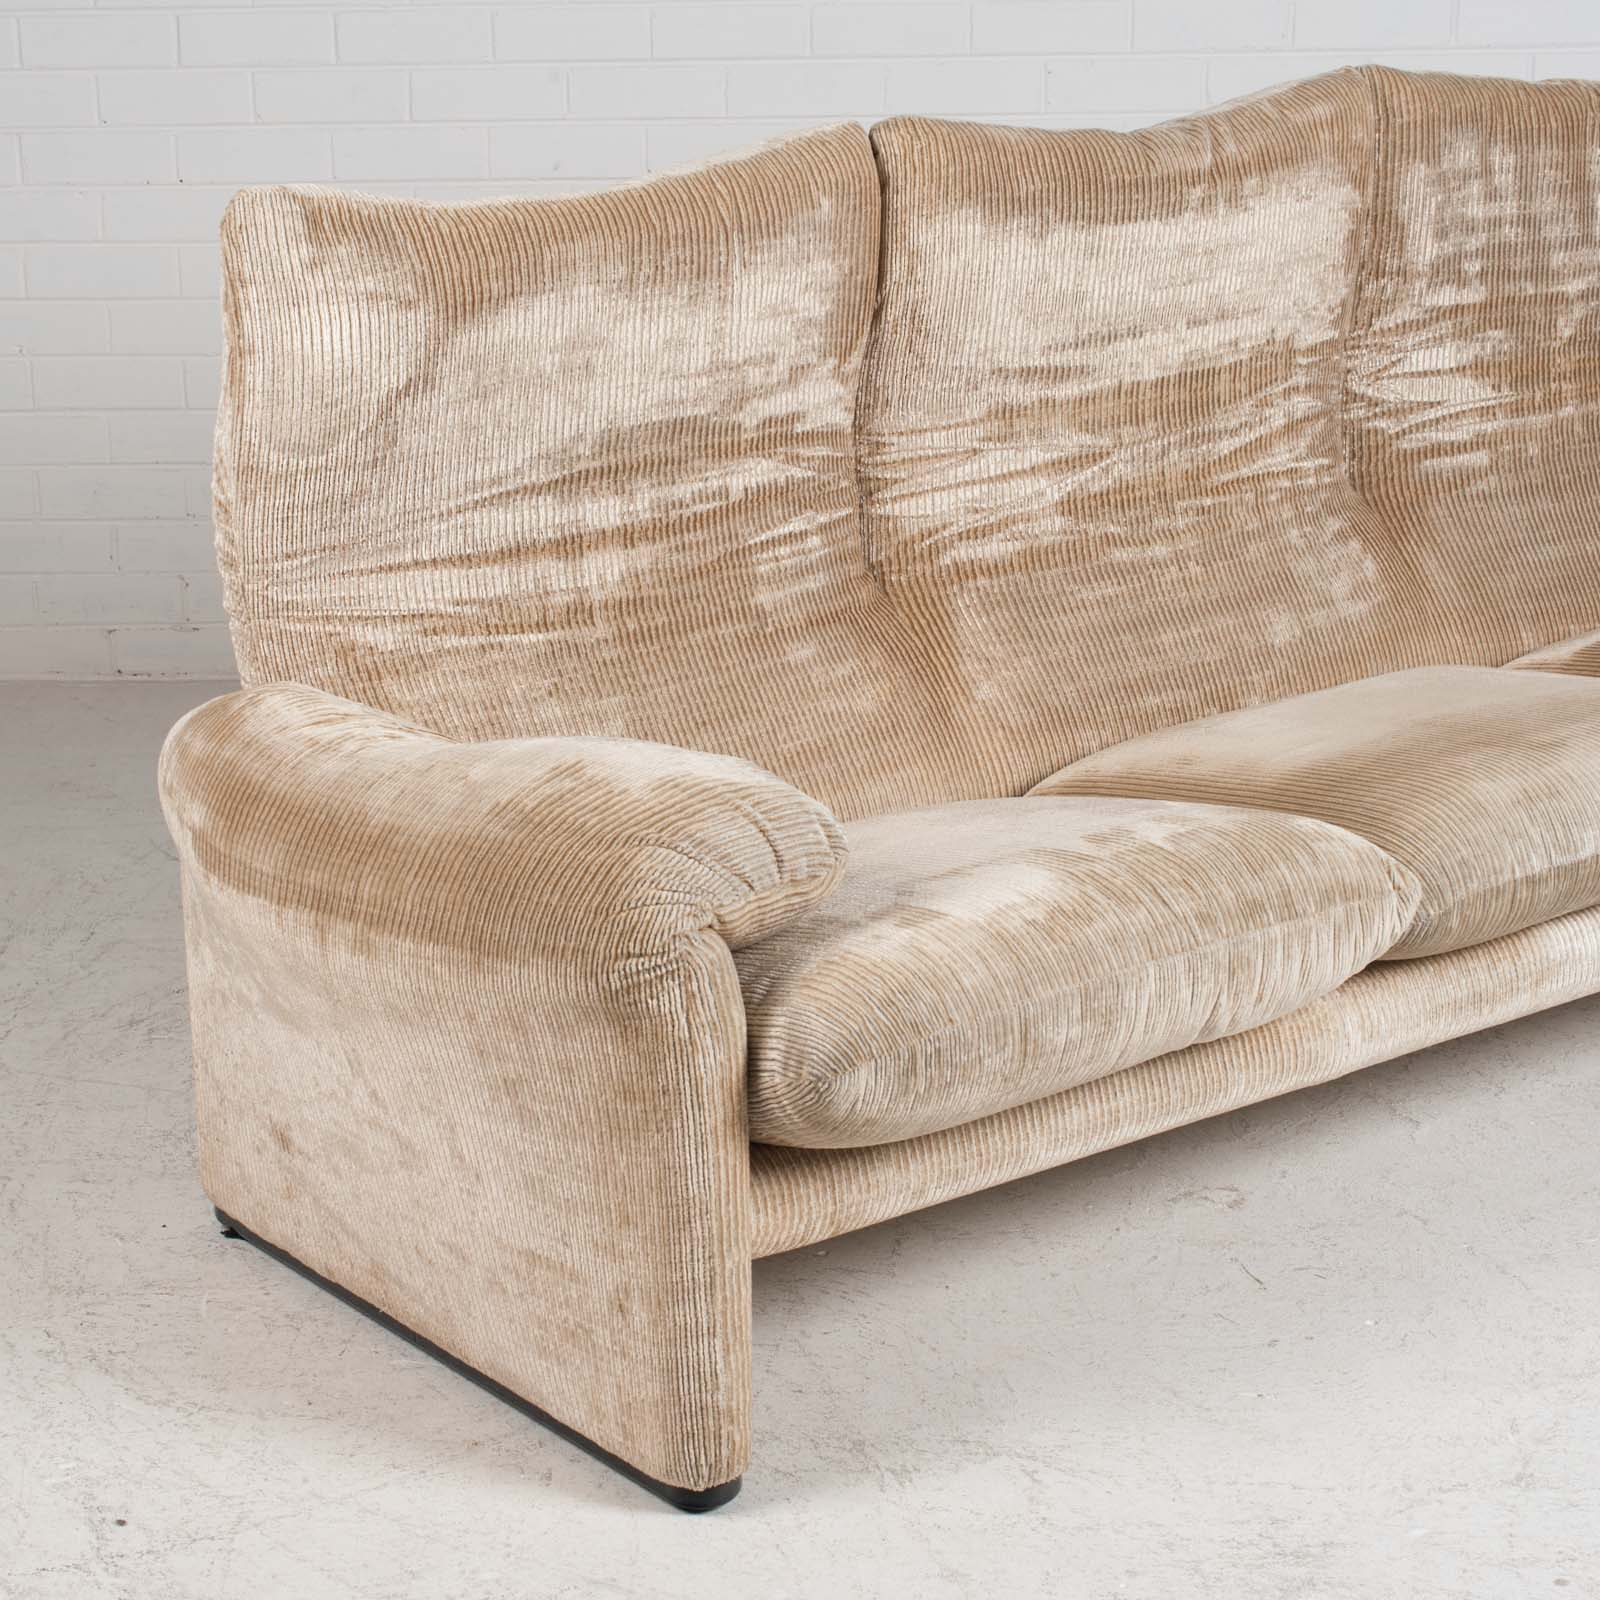 Maralunga 3 Seat Sofa By Vico Magistretti For Cassina In Original Upholstery 1970s Italy 04